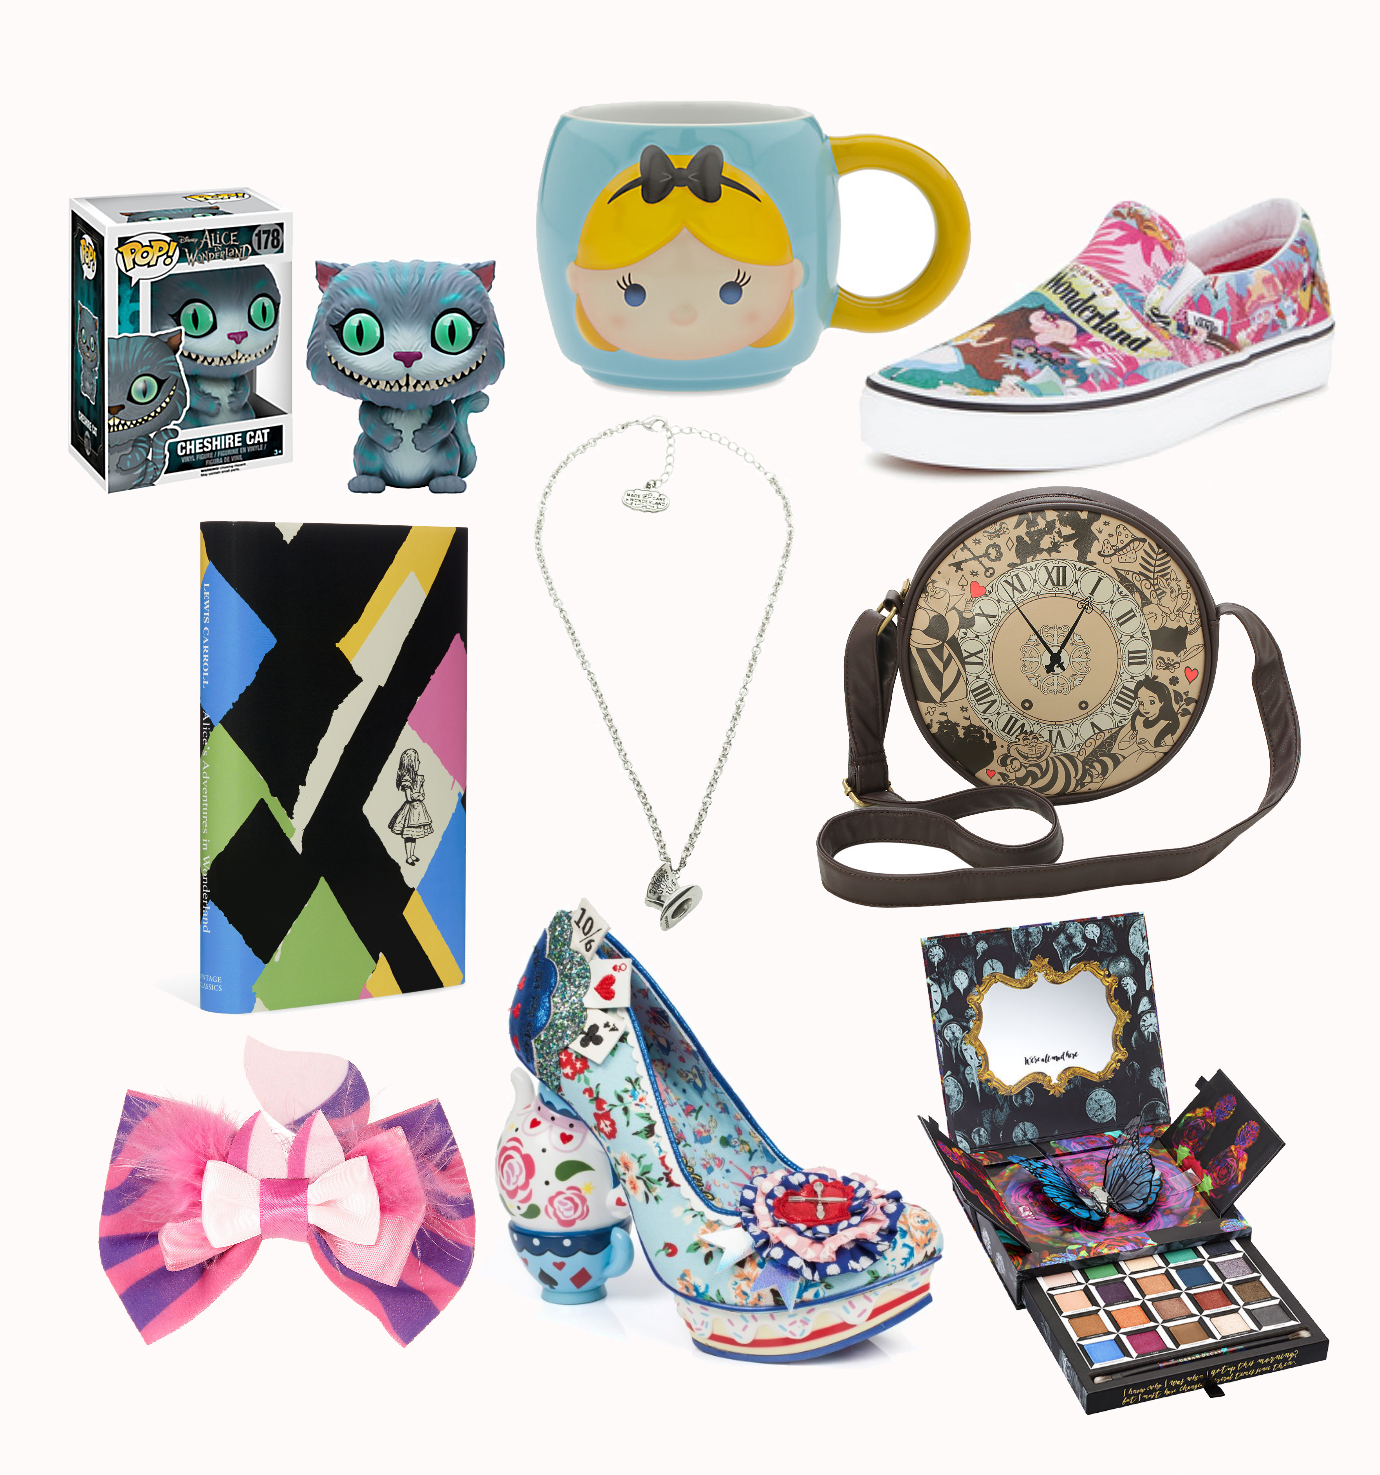 An Alice in Wonderland themed Wishlist